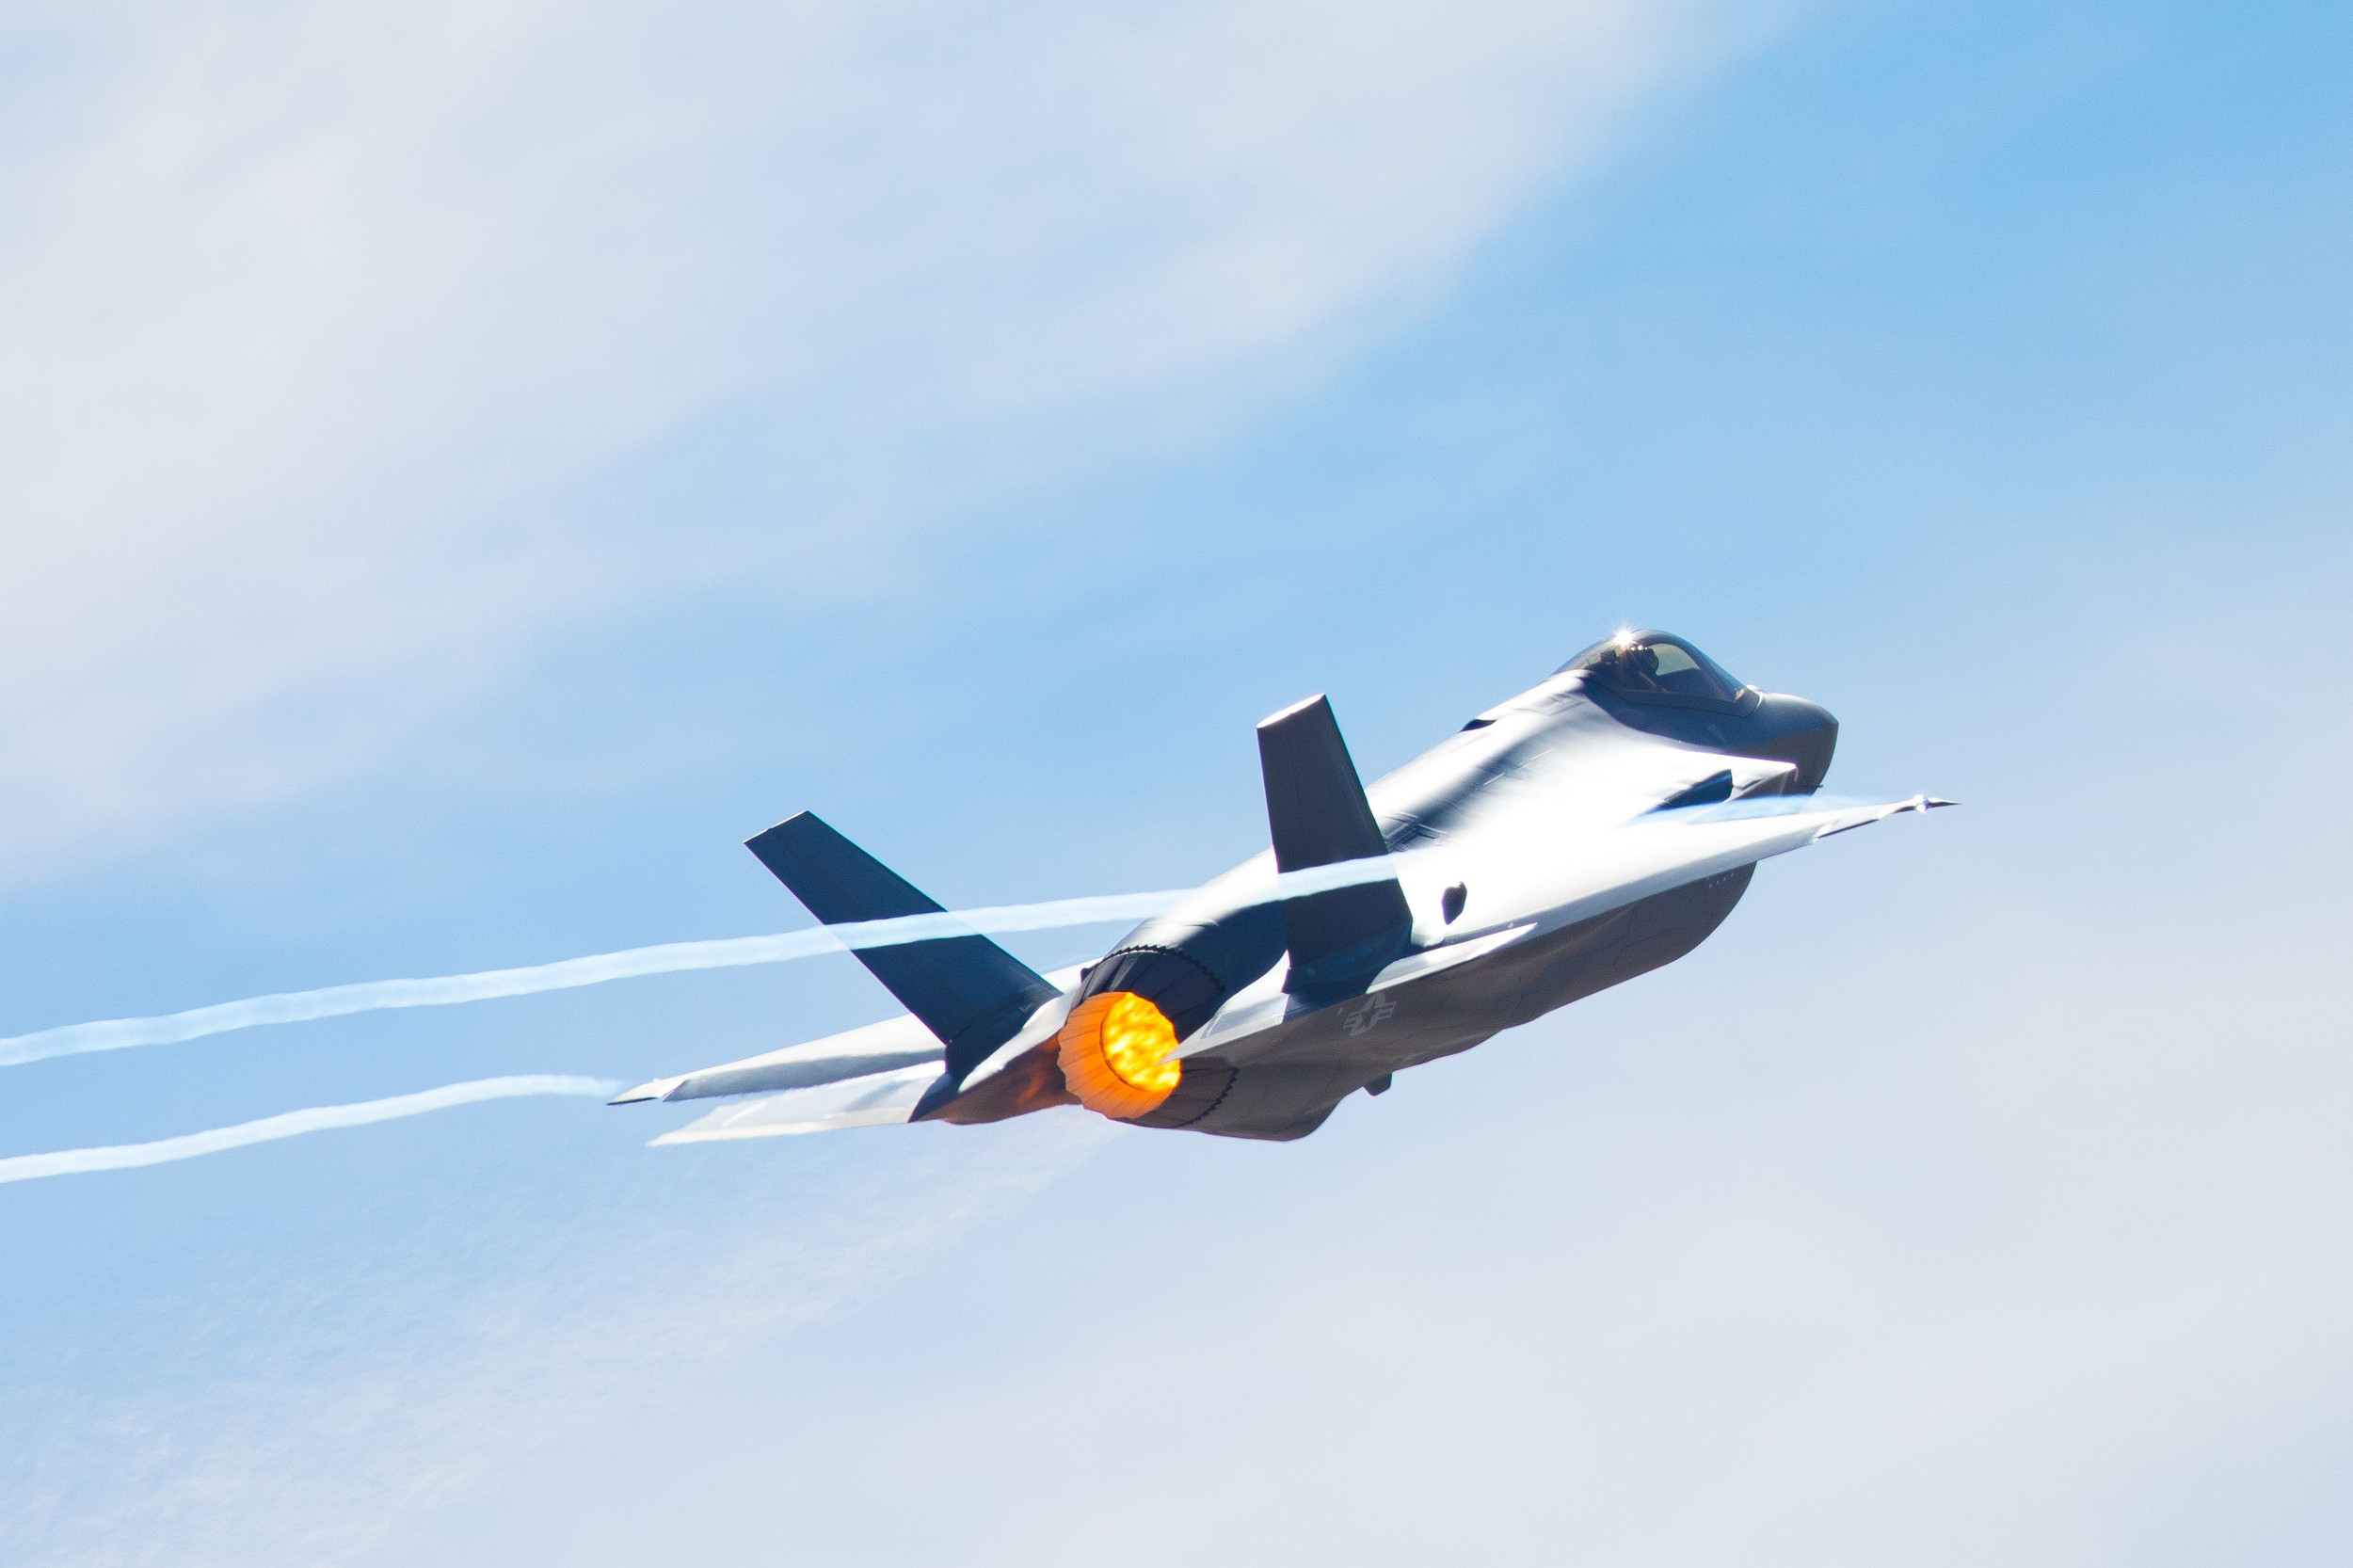 Hypersonics: Lockheed Says Supply Chain Is 'The Test'